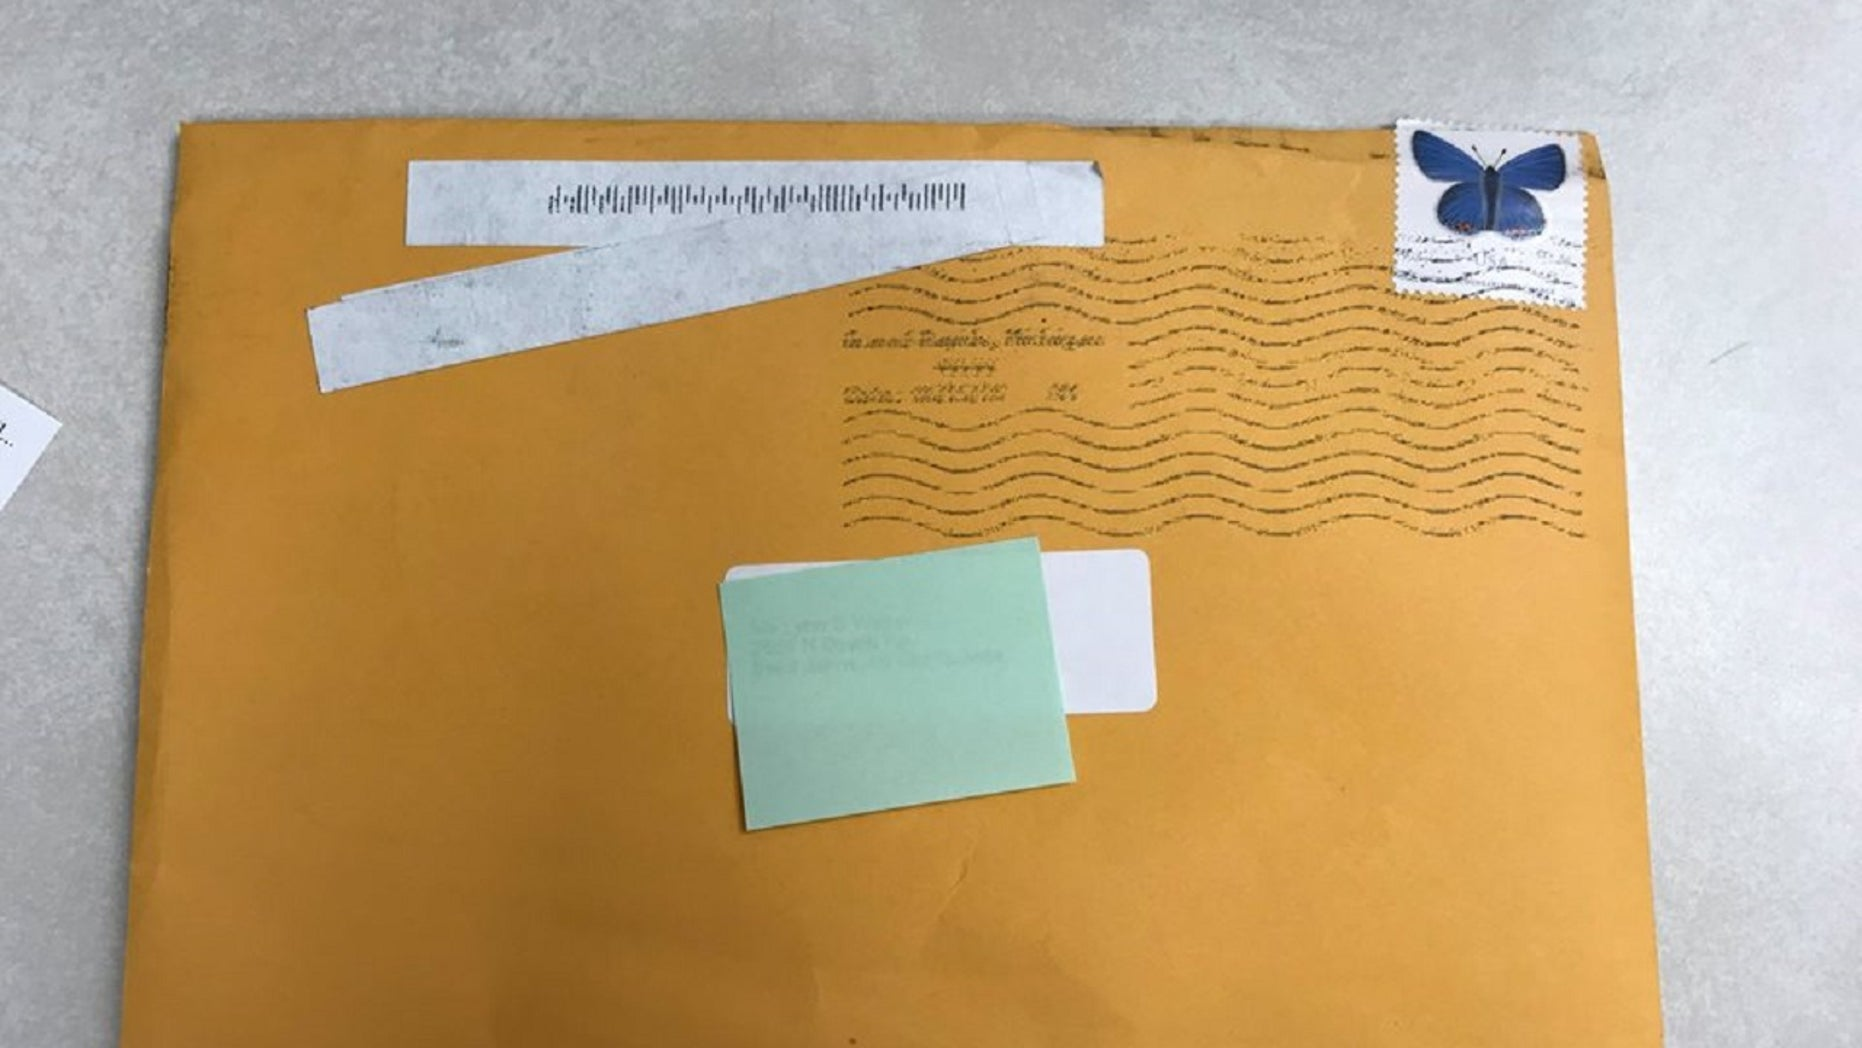 Police in St. Johns, Michigan, announced on Facebook this week that several people have received similar envelopes in the mail.